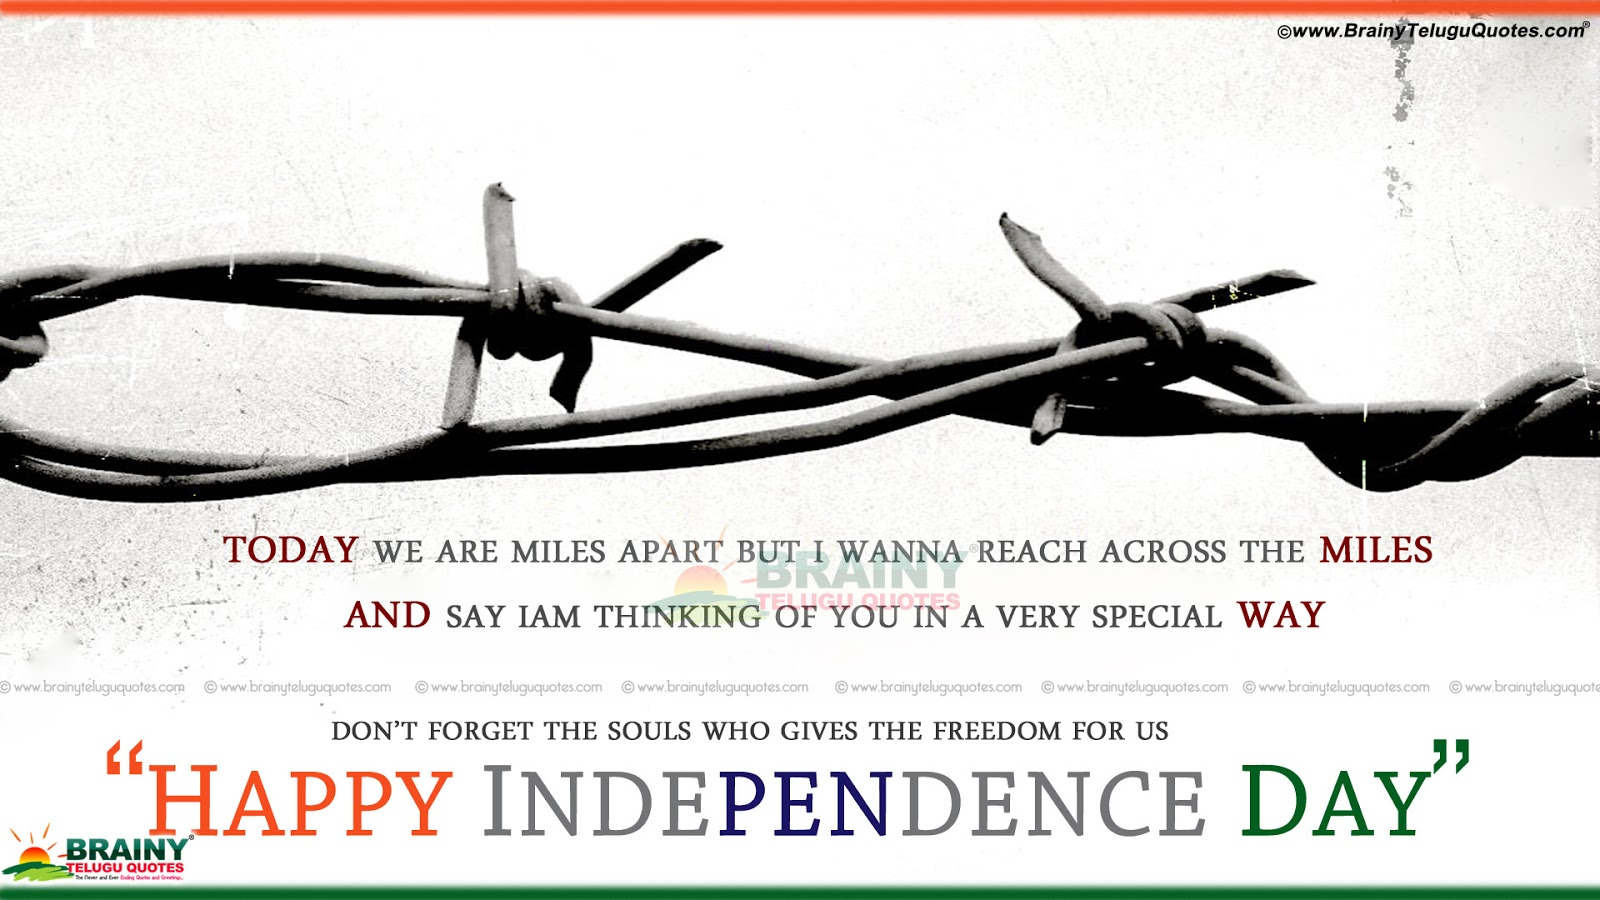 happy independenceday english greetings quotes here is happy independenceday english 2016 greetings quotes english 70th independence day greetings and quotations